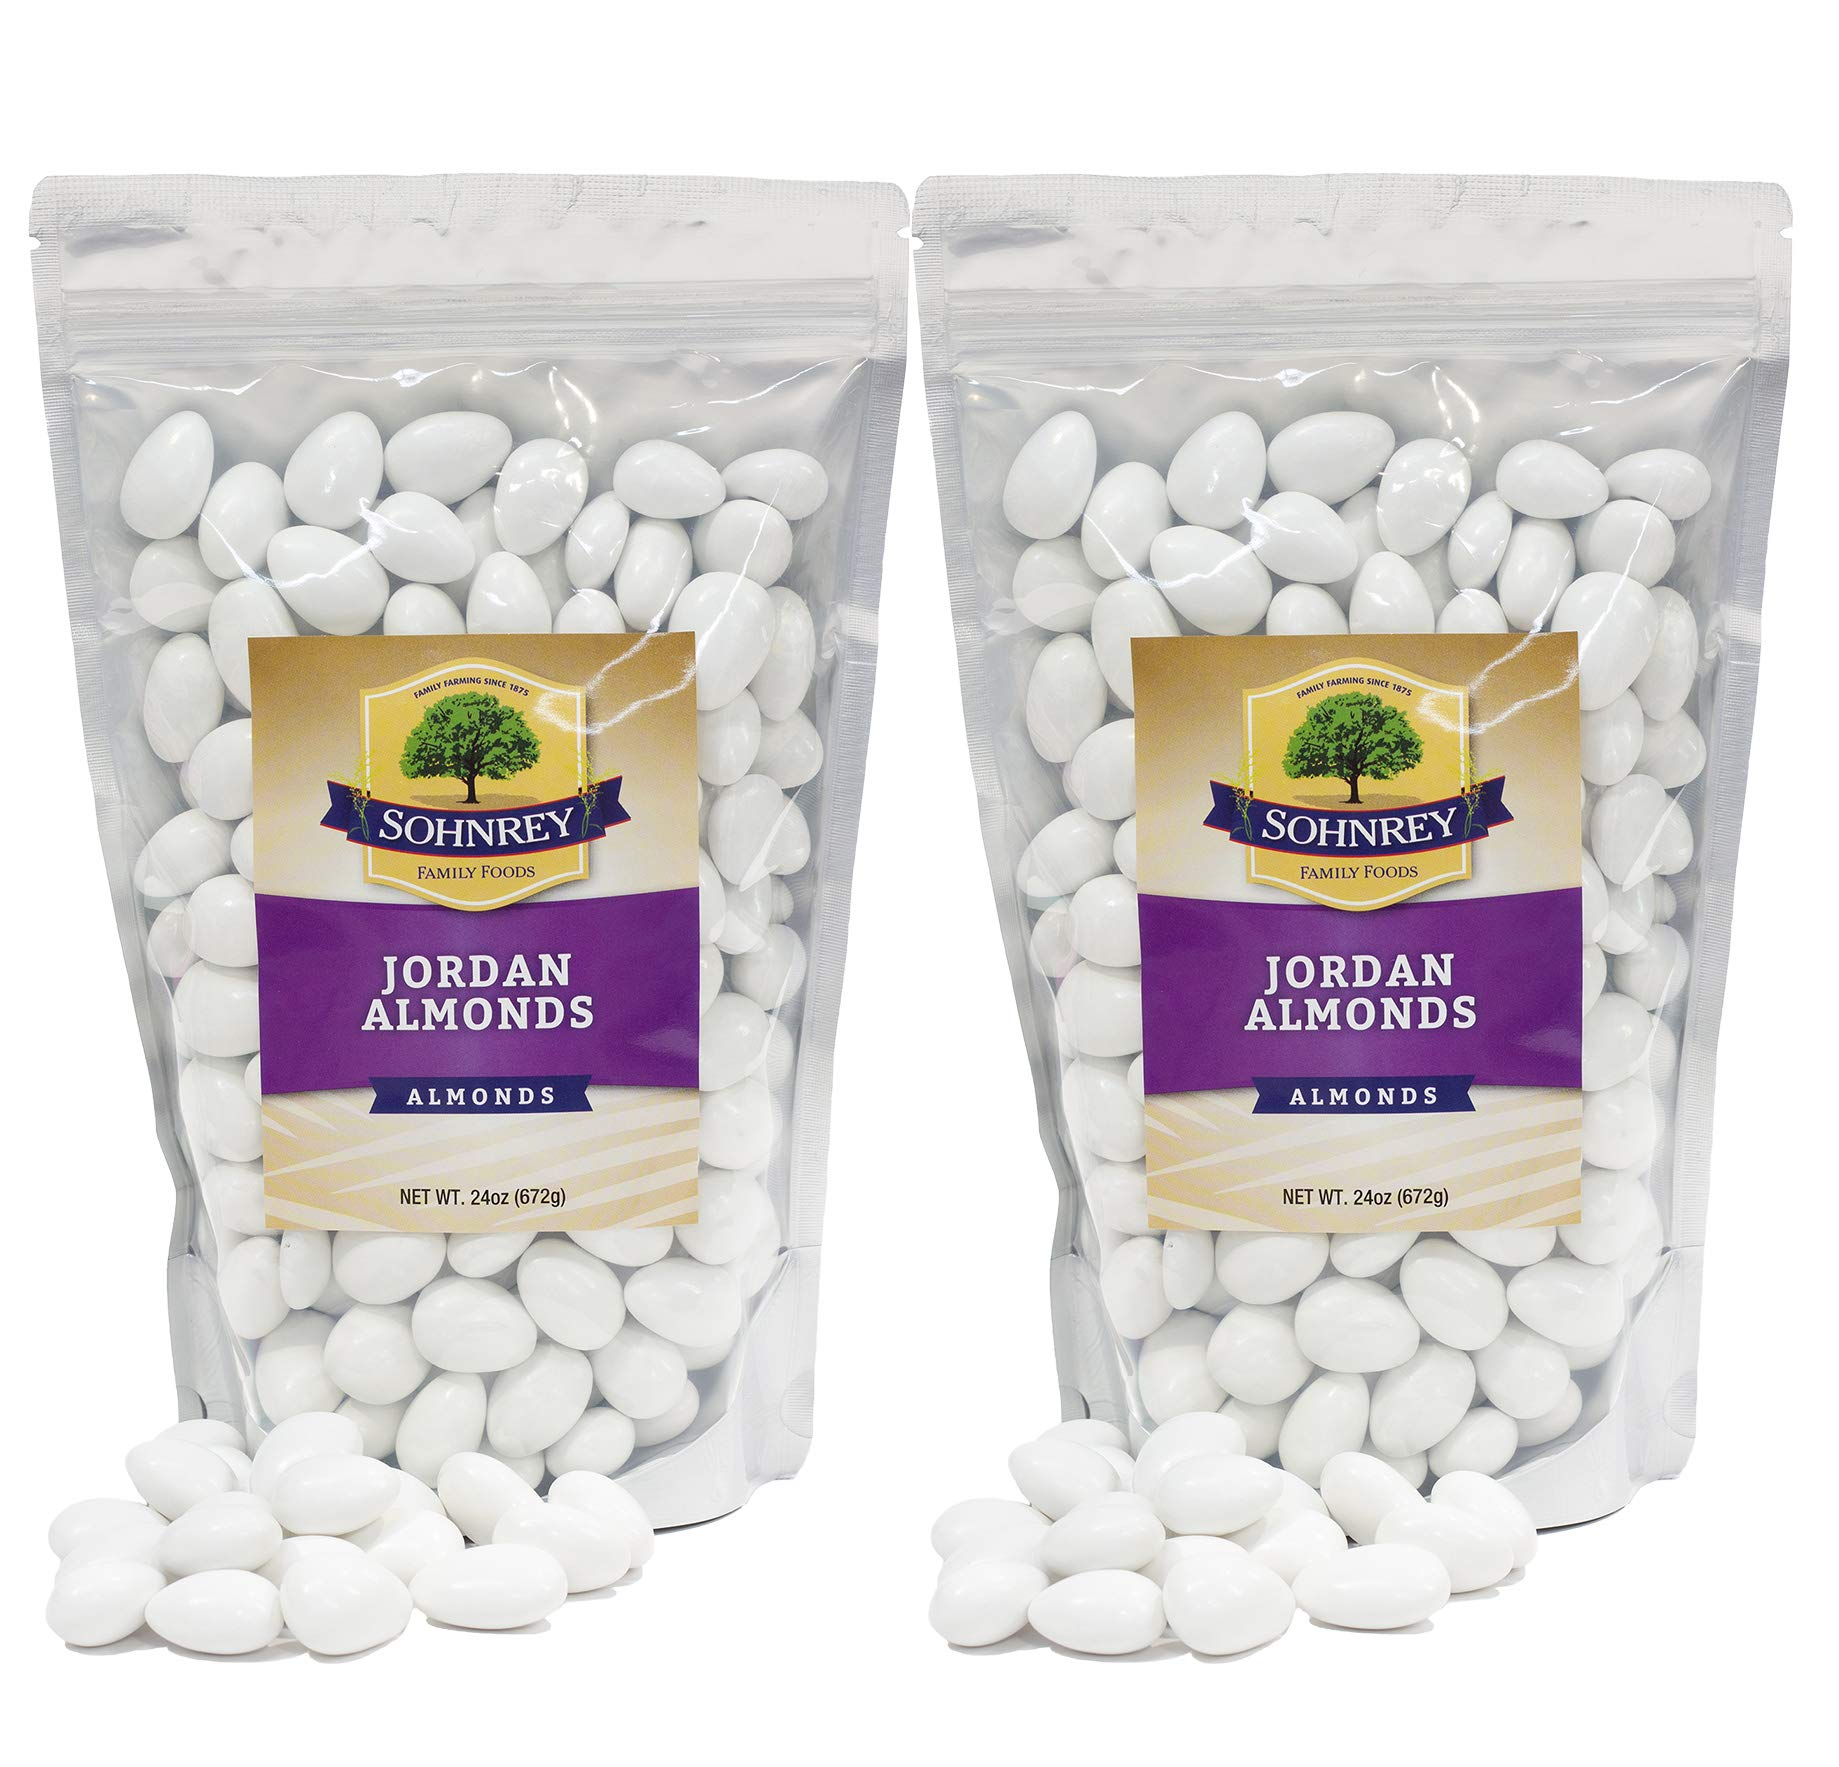 Jordan Almonds Wedding Shower Party Favor Premium White Candied Nuts (2-Pack (3 lbs)) by Sohnrey Family Foods